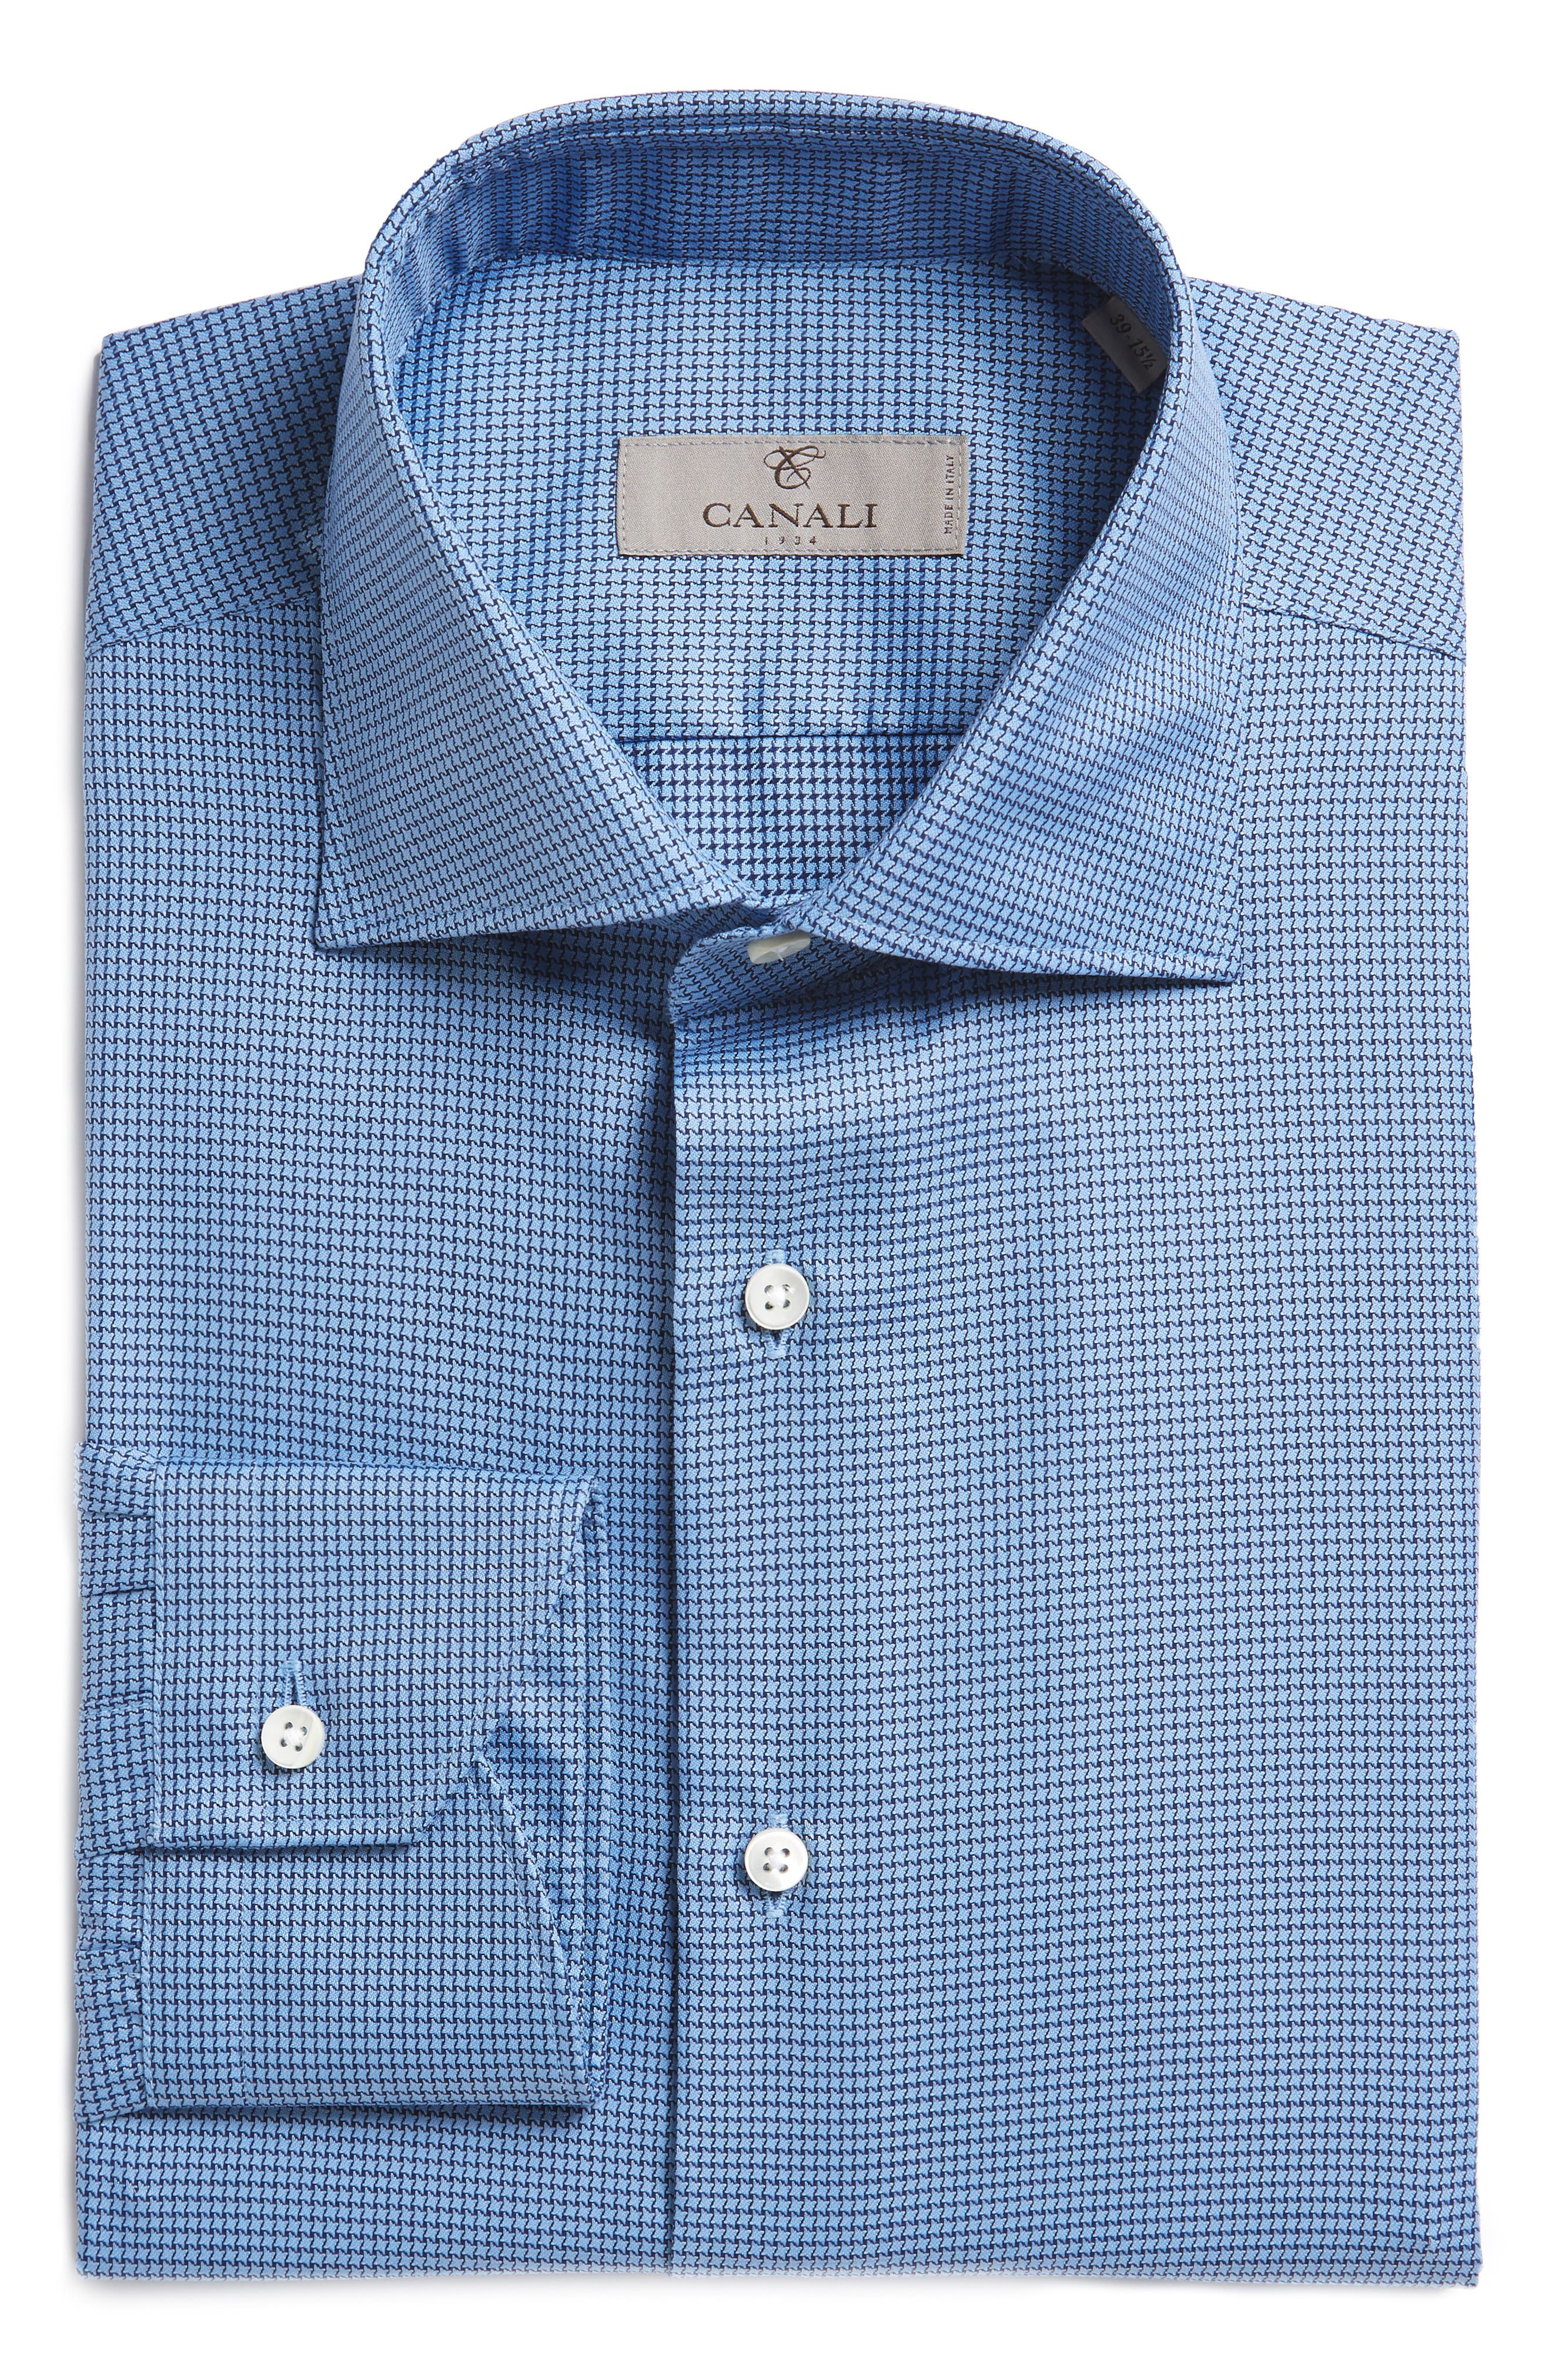 Alternate Image 1 Selected - Canali Regular Fit Houndstooth Dress Shirt